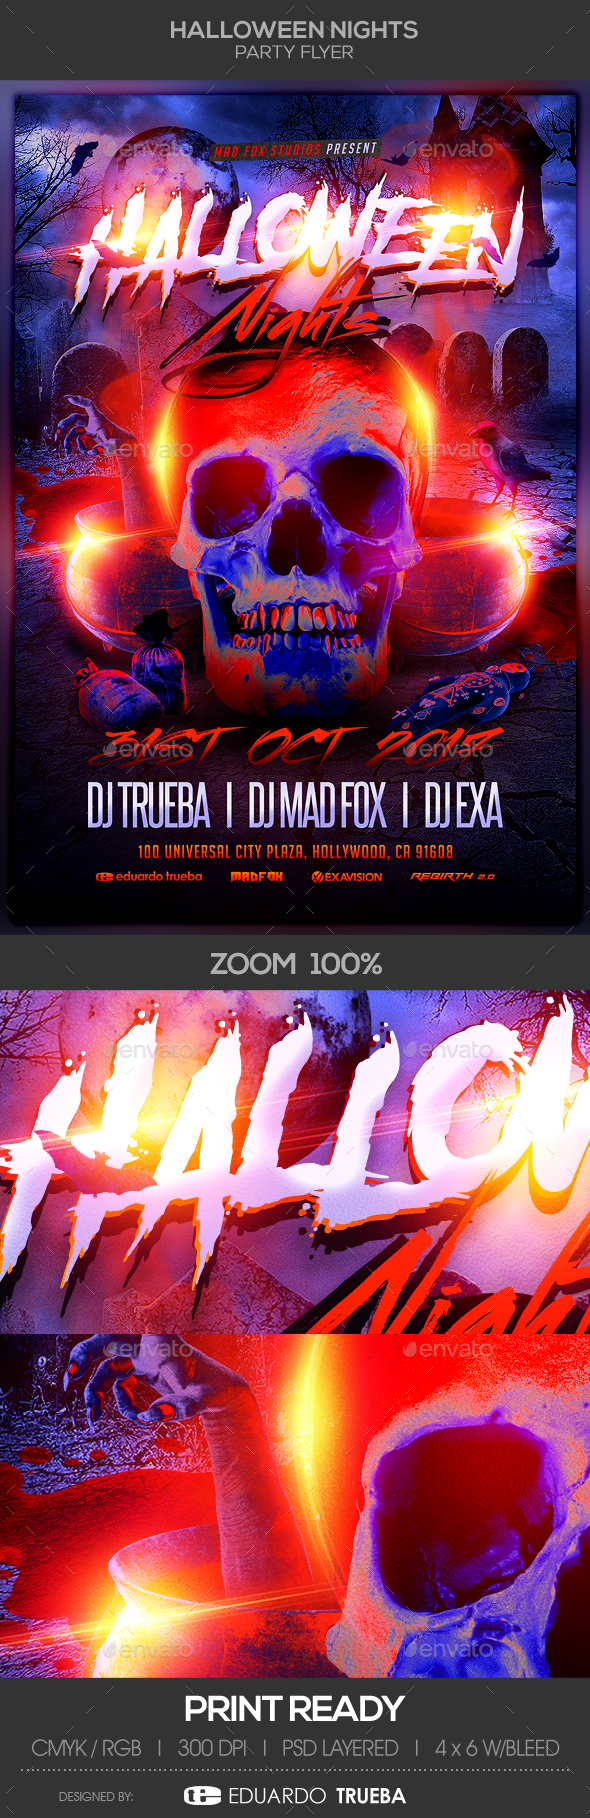 Halloween Nights Party Flyer - Clubs & Parties Events